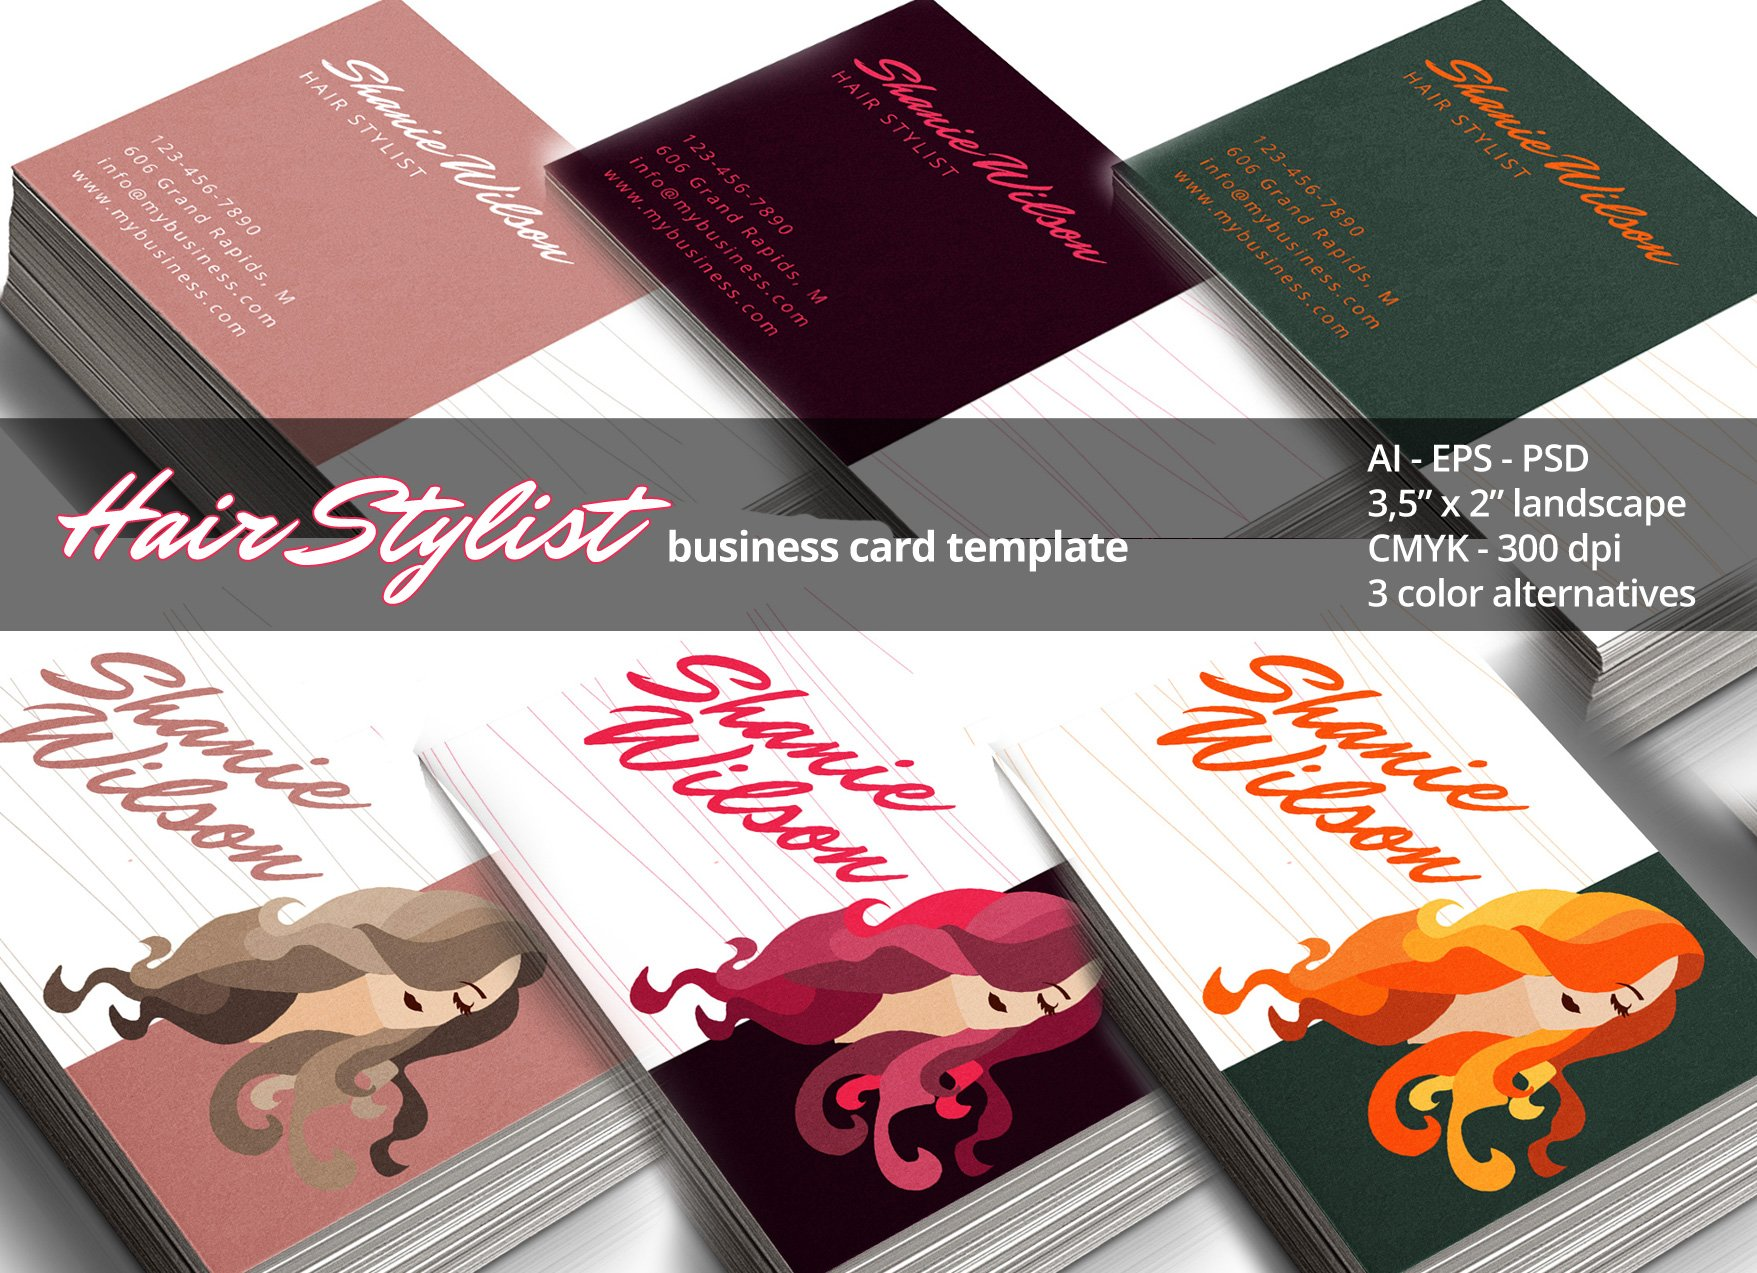 Hair stylist business card business card templates creative market friedricerecipe Images